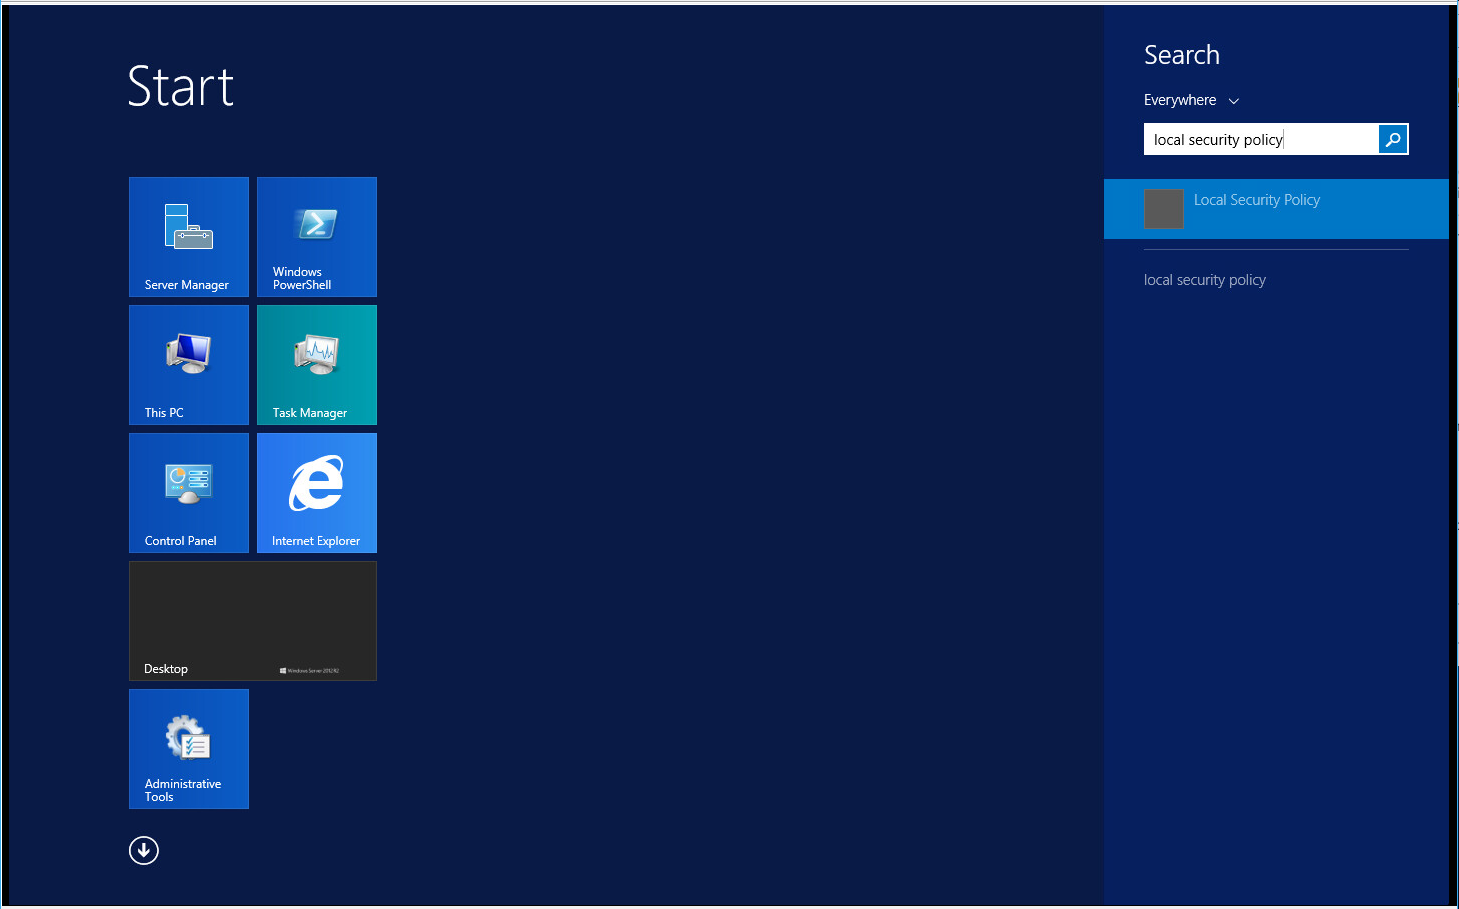 Data integrity nist sp 1800 11 0 documentation open local security policy from the start menu image71 baditri Gallery